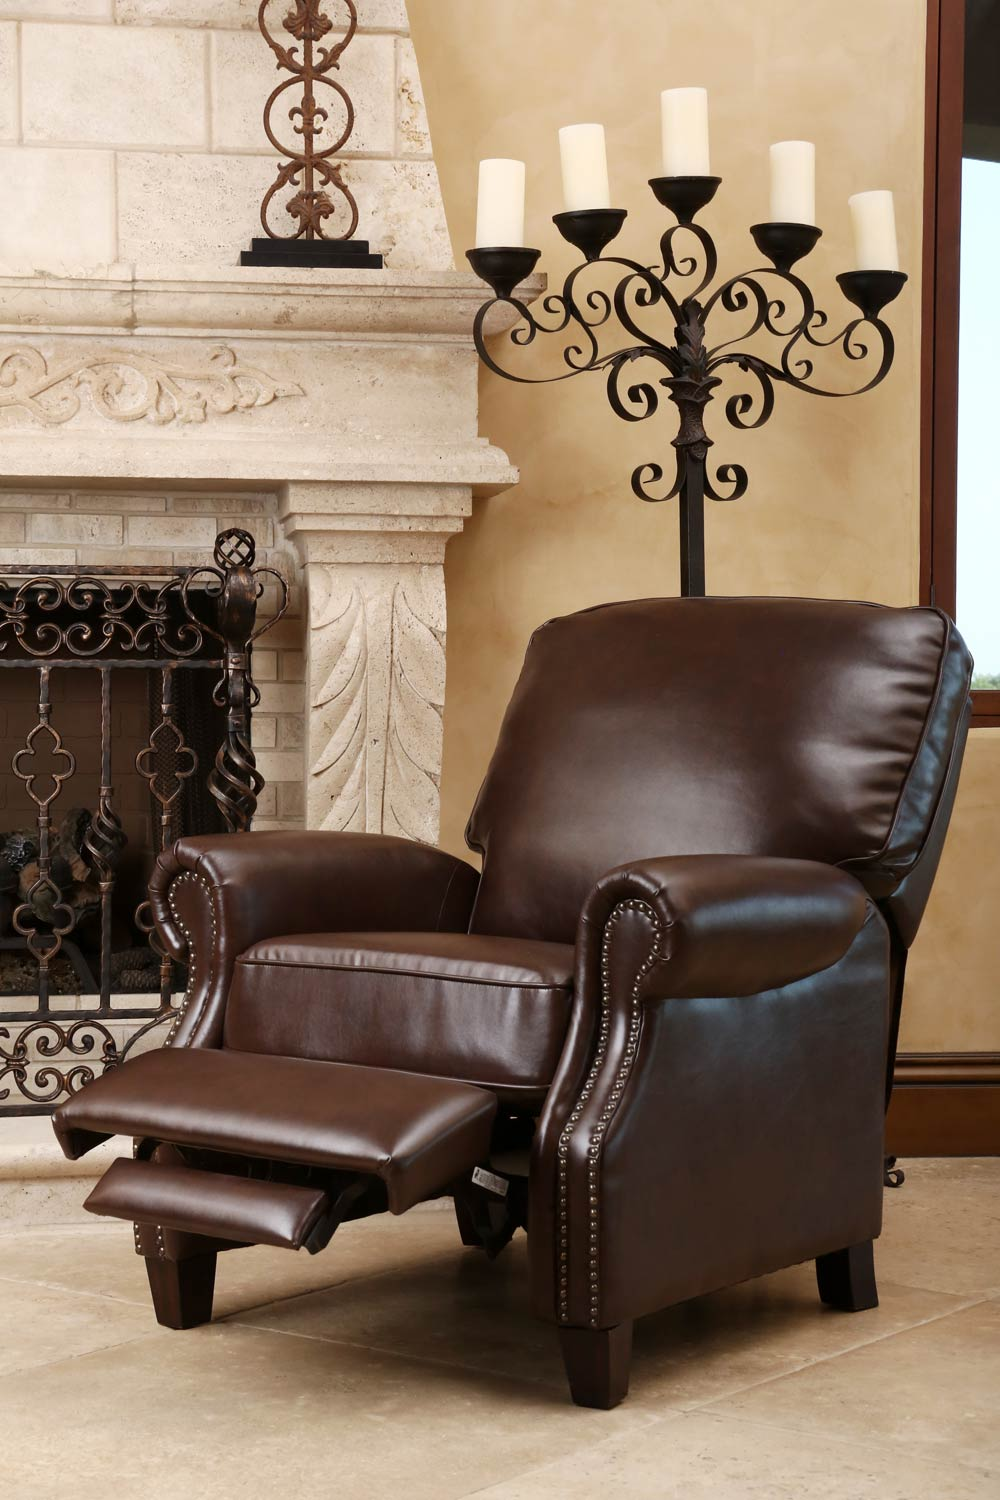 Abbyson Living Cliff Leather Push Back Recliner - Brown